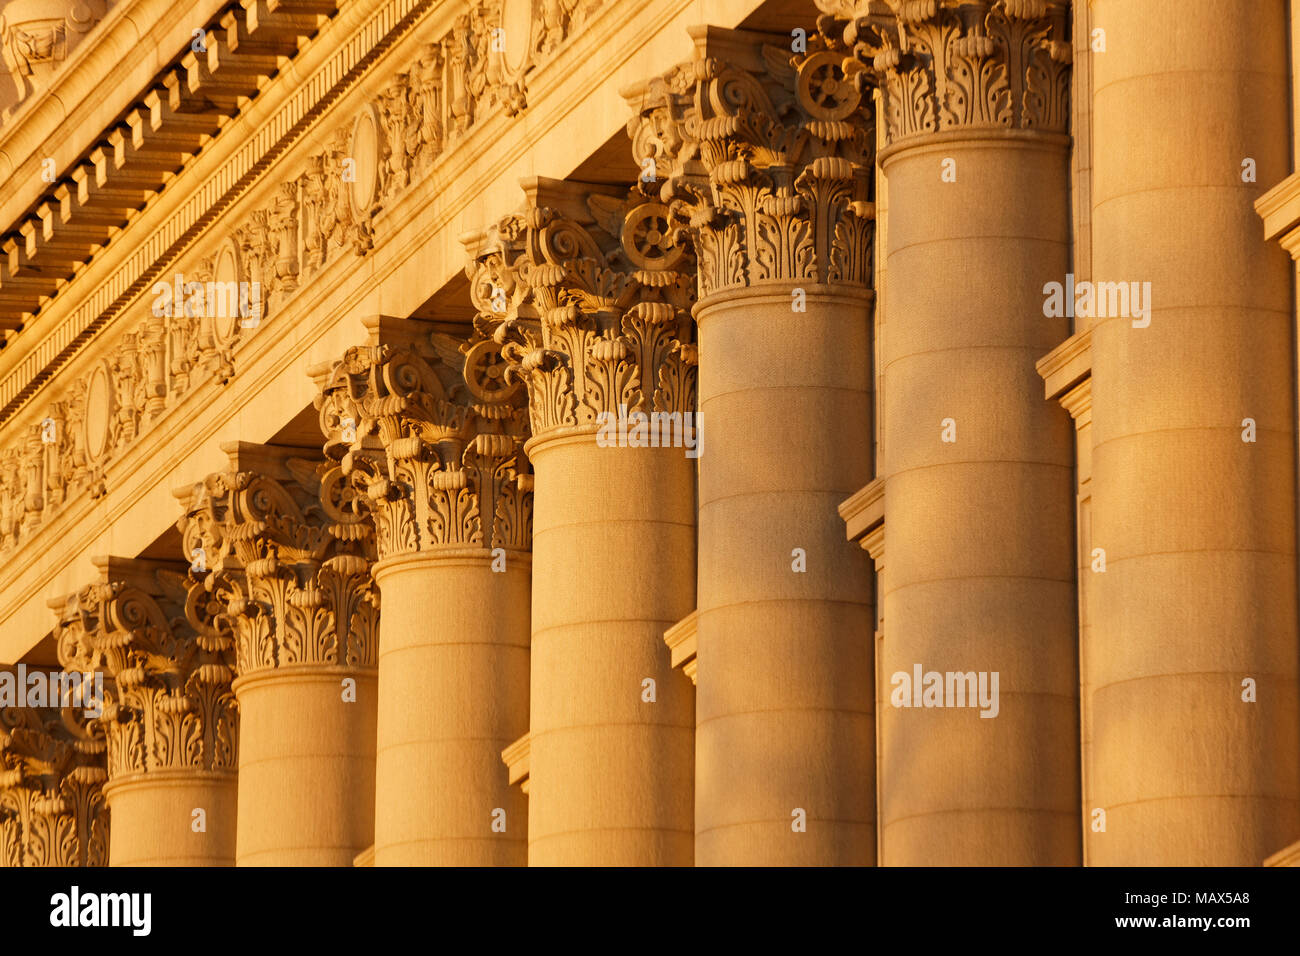 A series of Corinthian Columns shot at sunset, this was taken in lower Manhattan at the old customs house - Stock Image